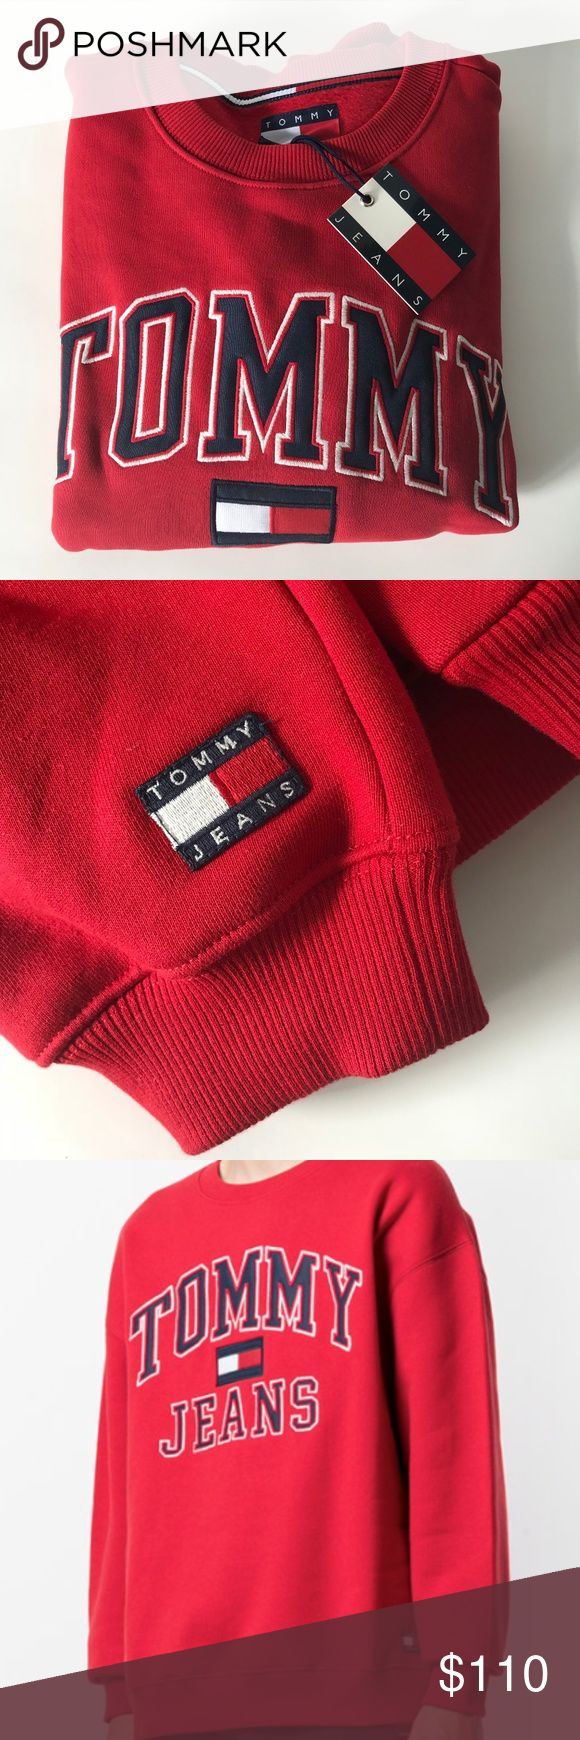 """Tommy Hilfiger Red Sweatshirt w/ logo Sold out online! Classic Tommy Hilfiger sweatshirt for that retro look. New but """"vintage"""". So hot right now!  Size M.  Flat measurements: 26 inches across from armpit to armpit (laying flat). 24.5 inches in length from top of shoulder to bottom hem. Please see my other listings for this sweatshirt in Large (Navy Blue) and X-Small (Grey). Tommy Hilfiger Tops Sweatshirts & Hoodies"""